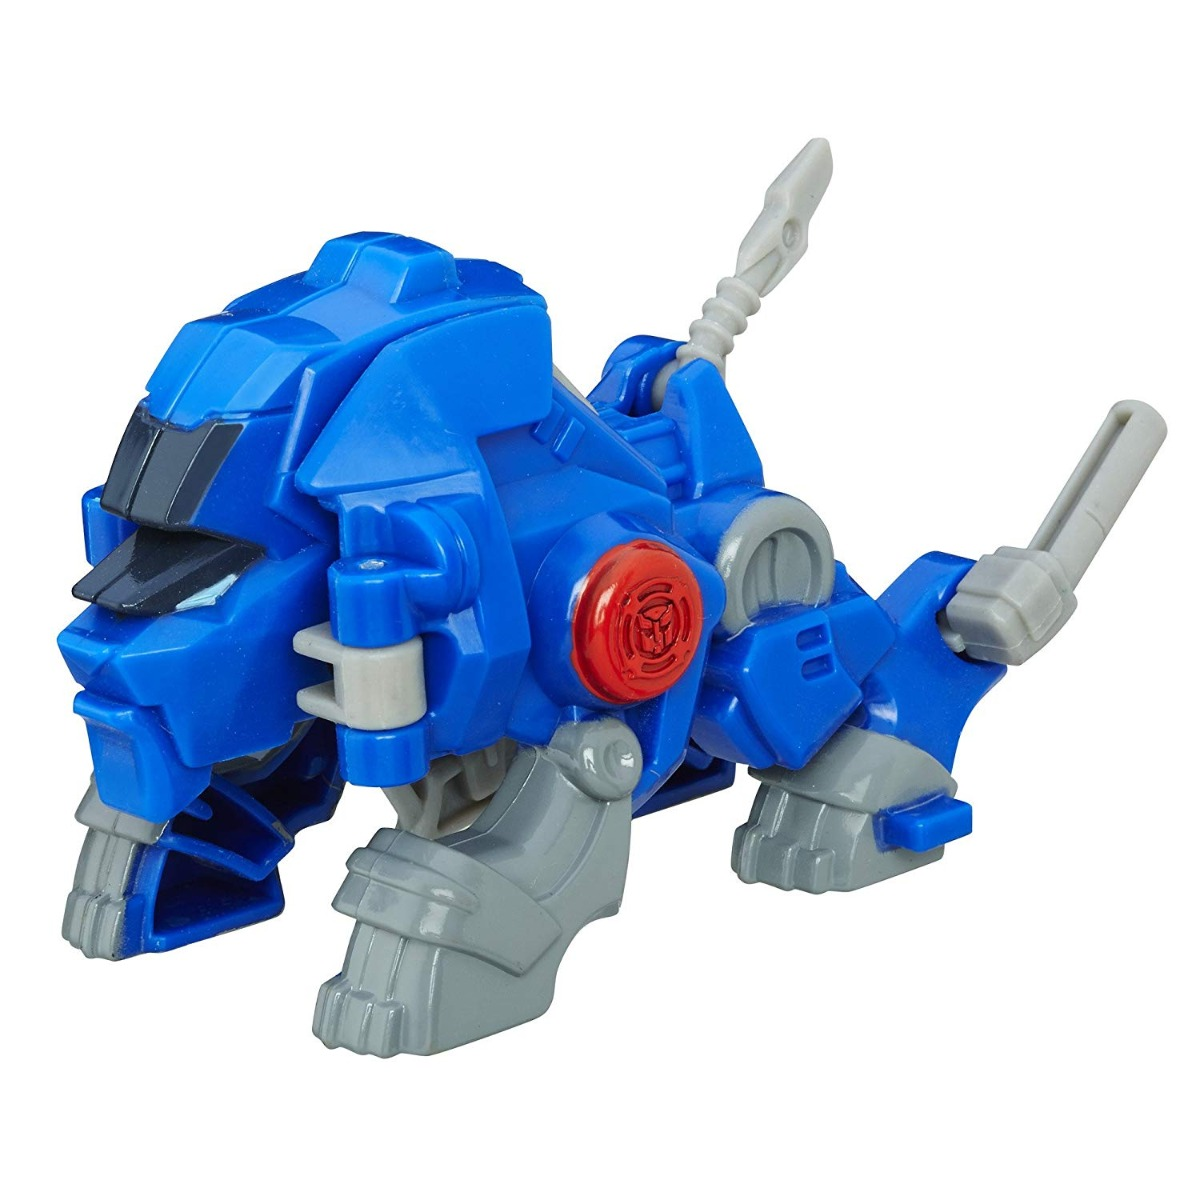 Figurina Transformers Playskool Heroes Rescue Bots - Valor The Lion